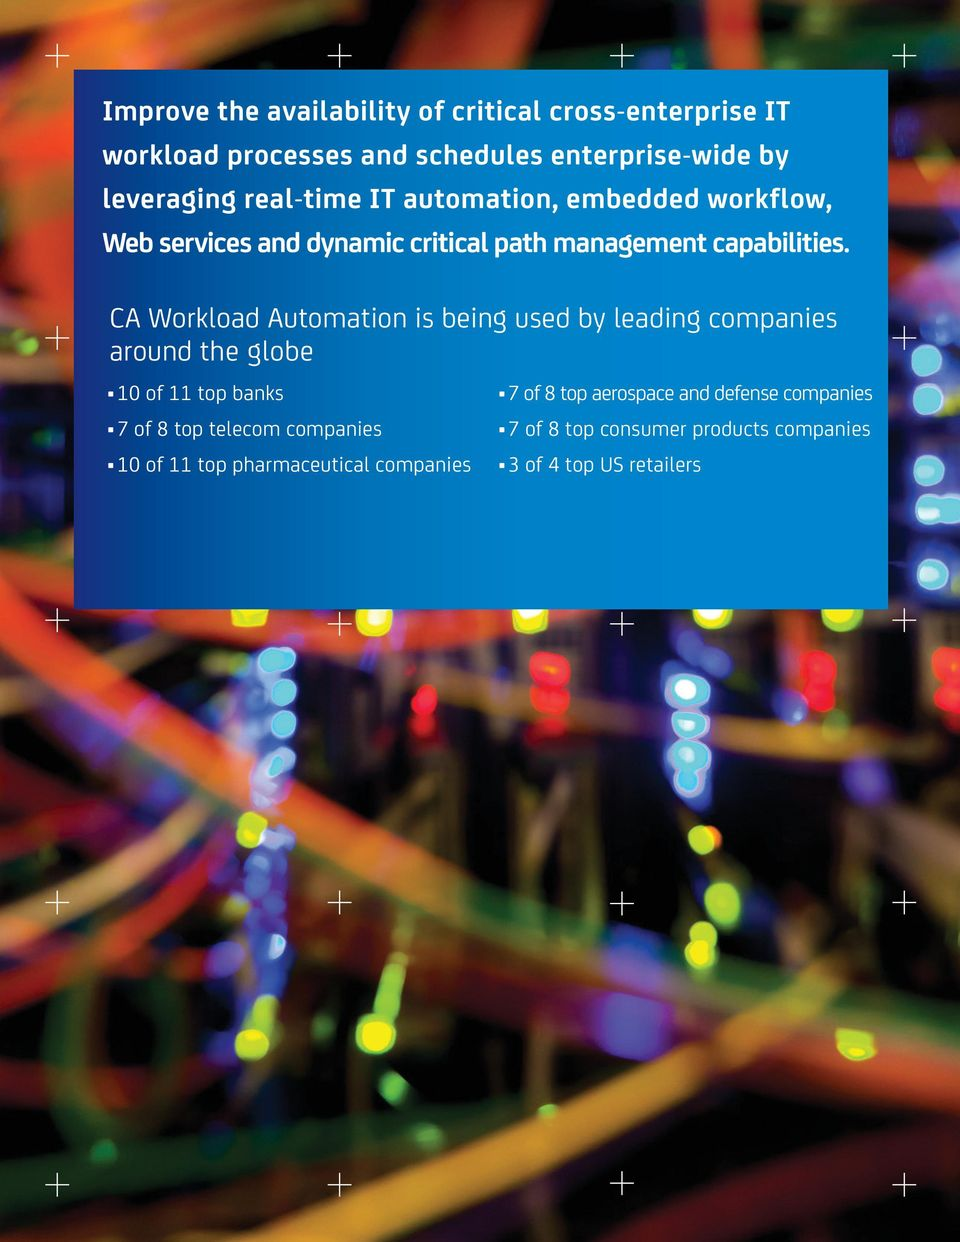 CA Workload Automation is being used by leading companies around the globe 10 of 11 top banks 7 of 8 top telecom companies